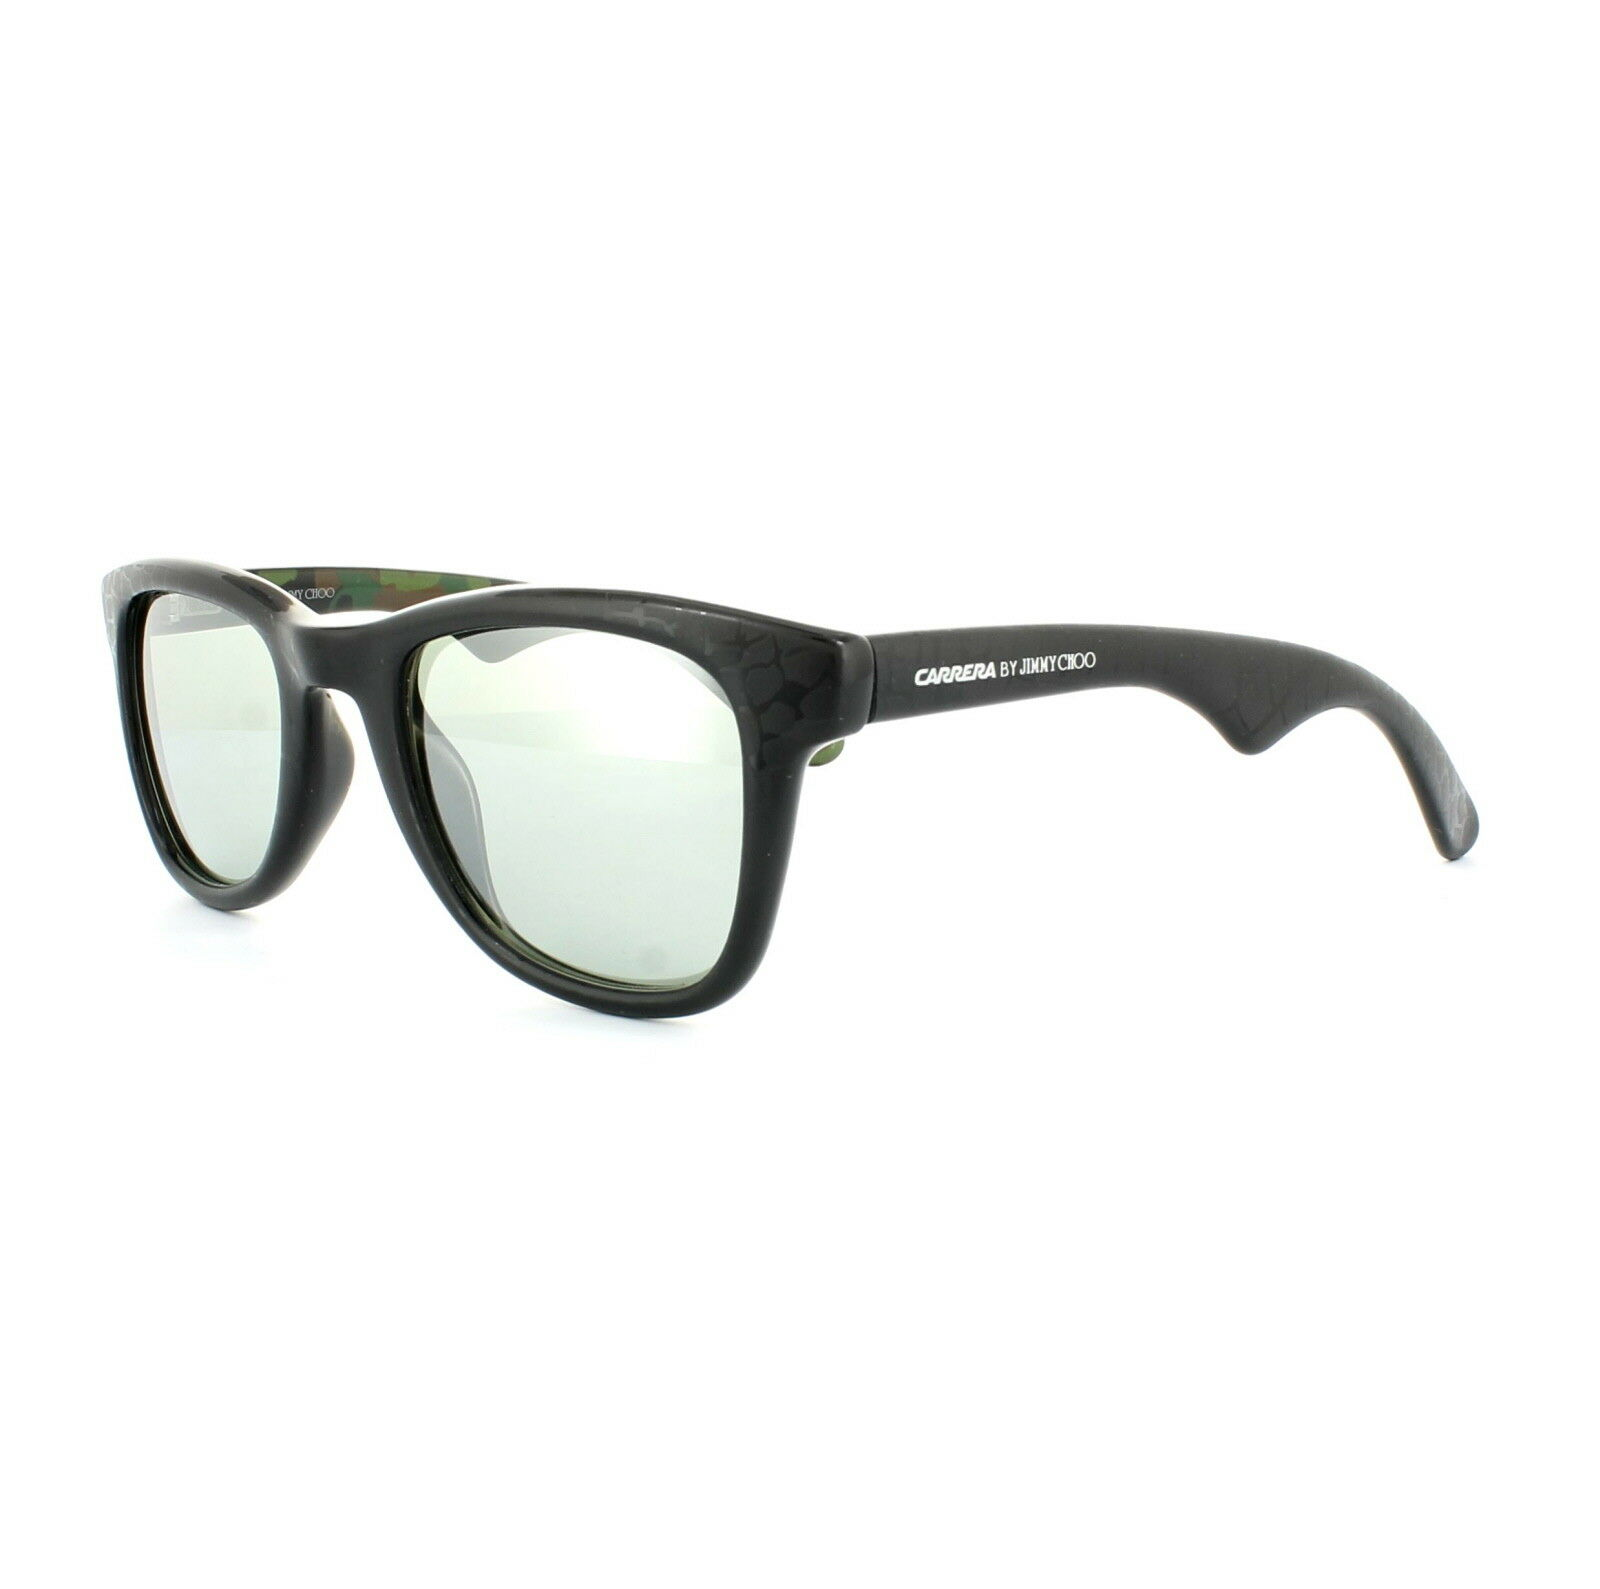 ae3235ce0ddb Carrera by Jimmy Choo Sunglasses 6000 jcm Ogy J5 Black Camo Grey ...